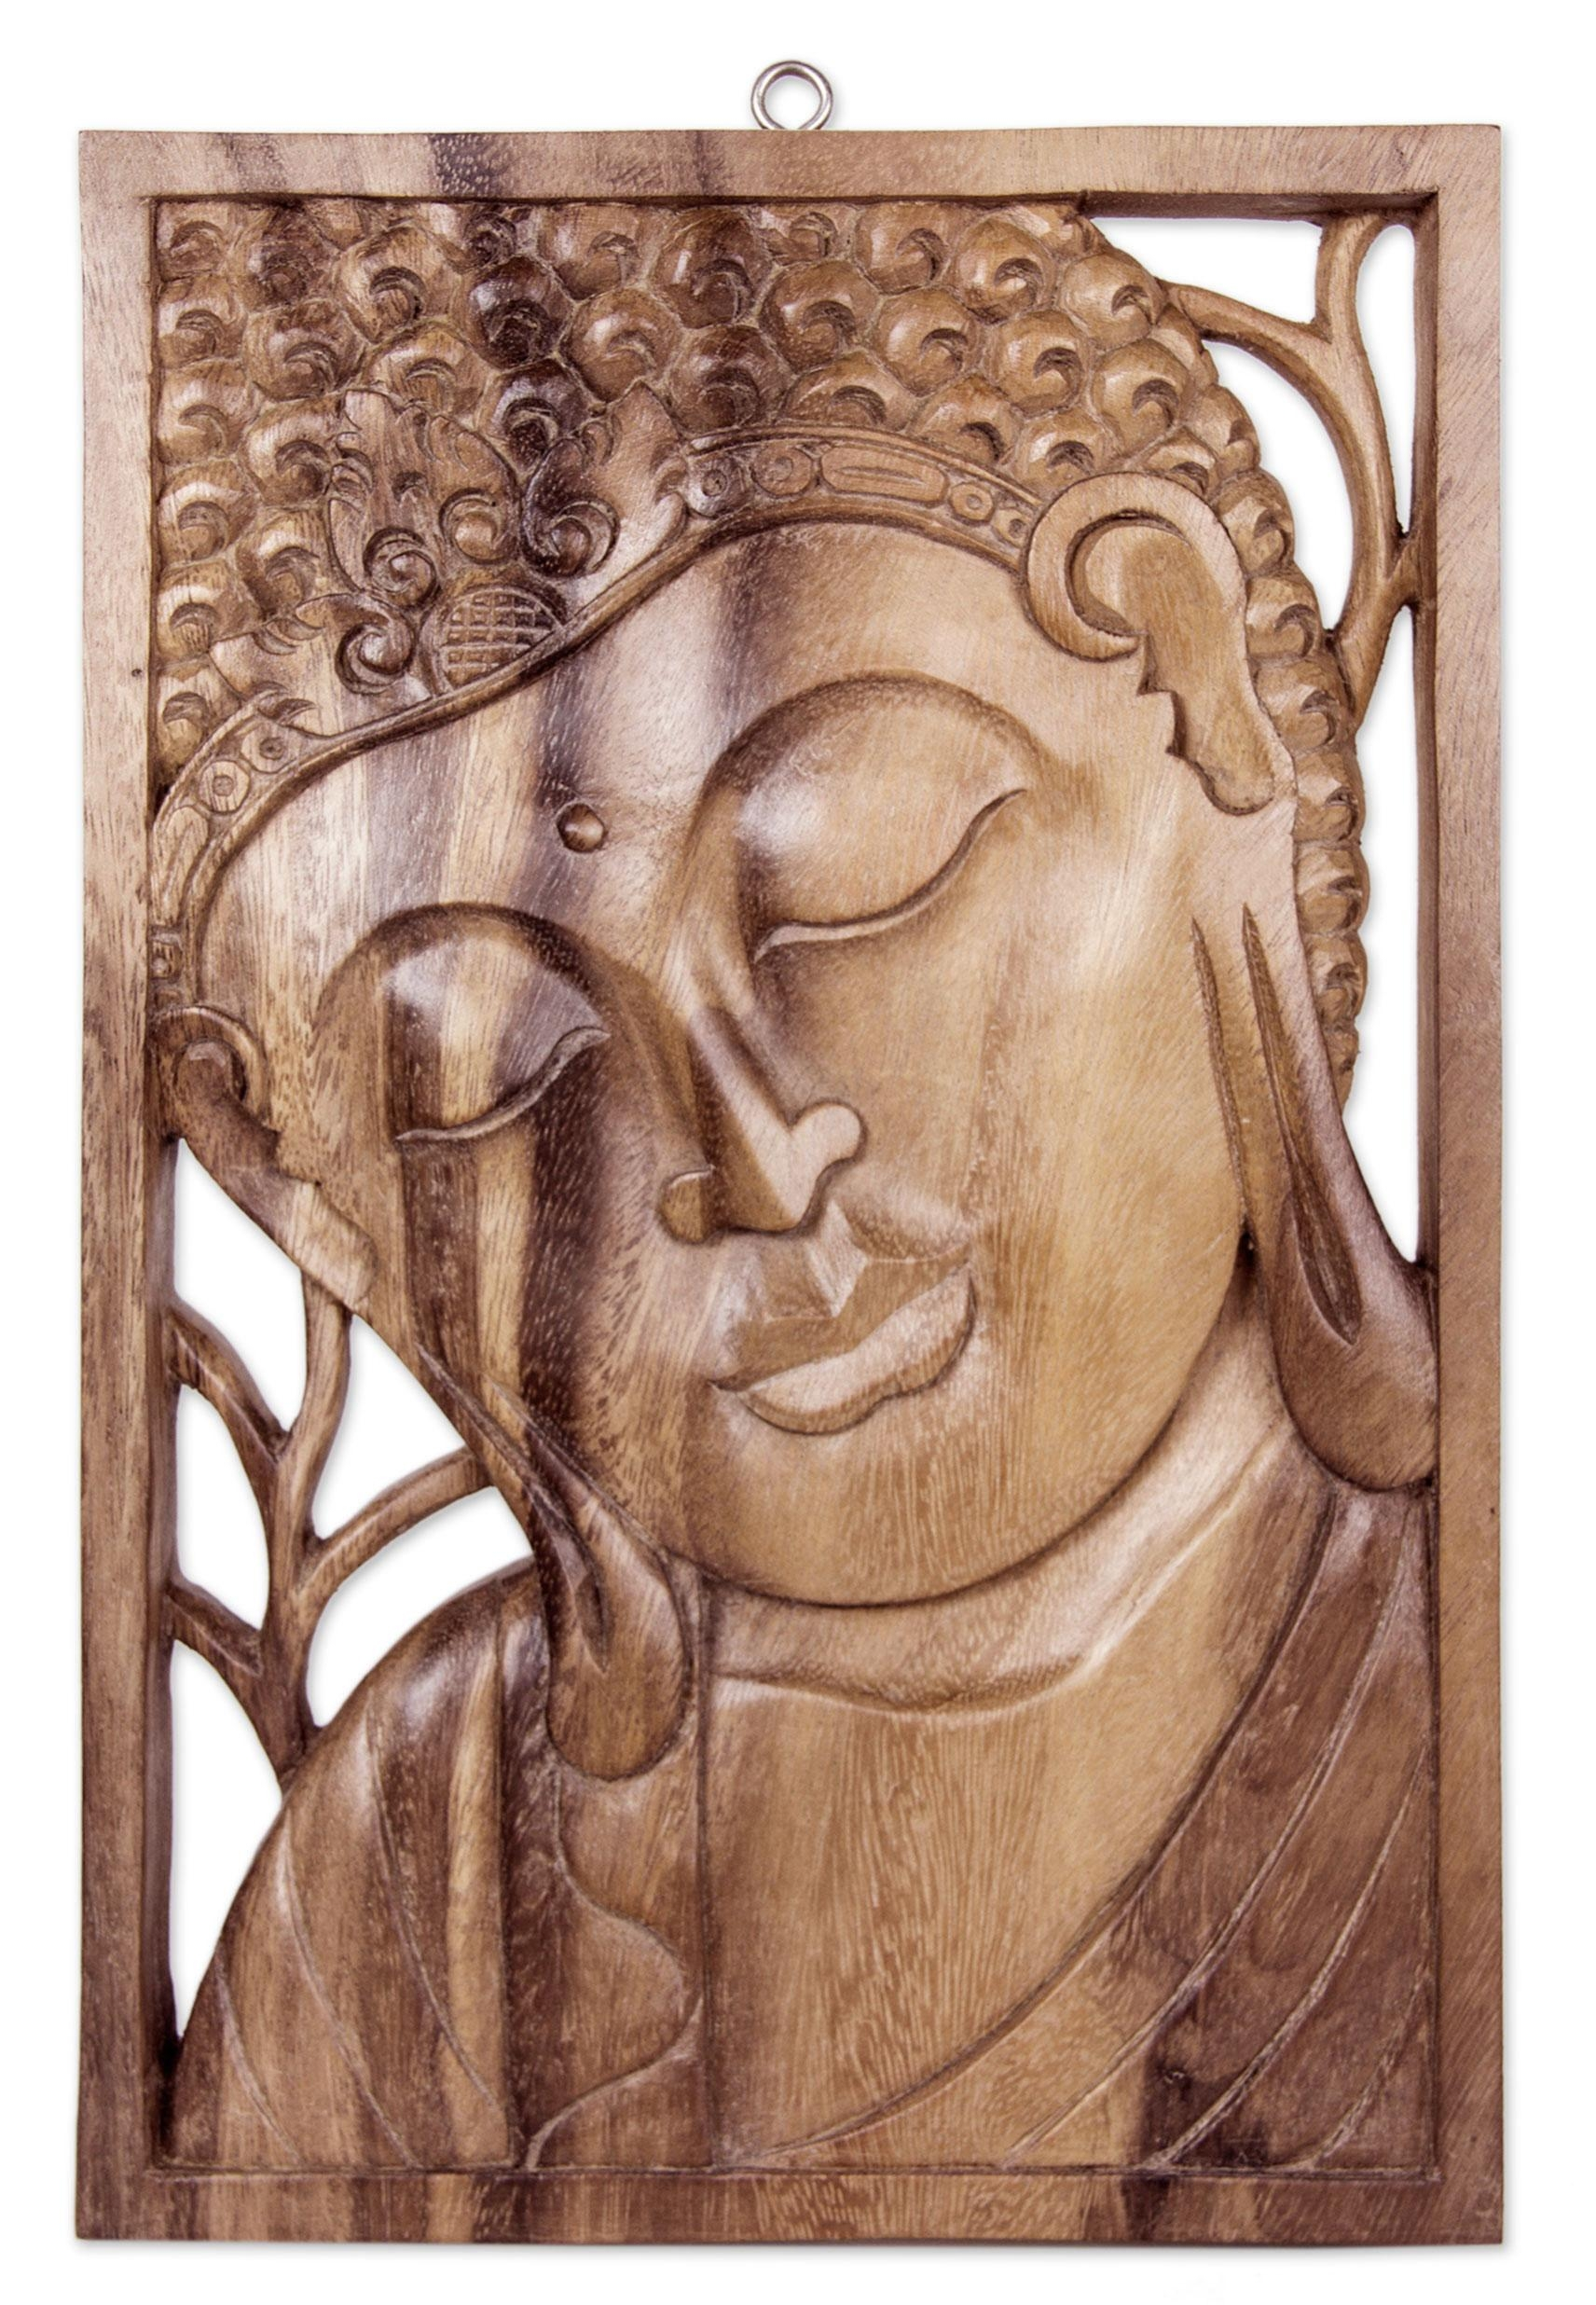 Zen Home Decor Ideas – Buddha Decor And Art | Novica With Regard To Buddha Wood Wall Art (View 7 of 20)